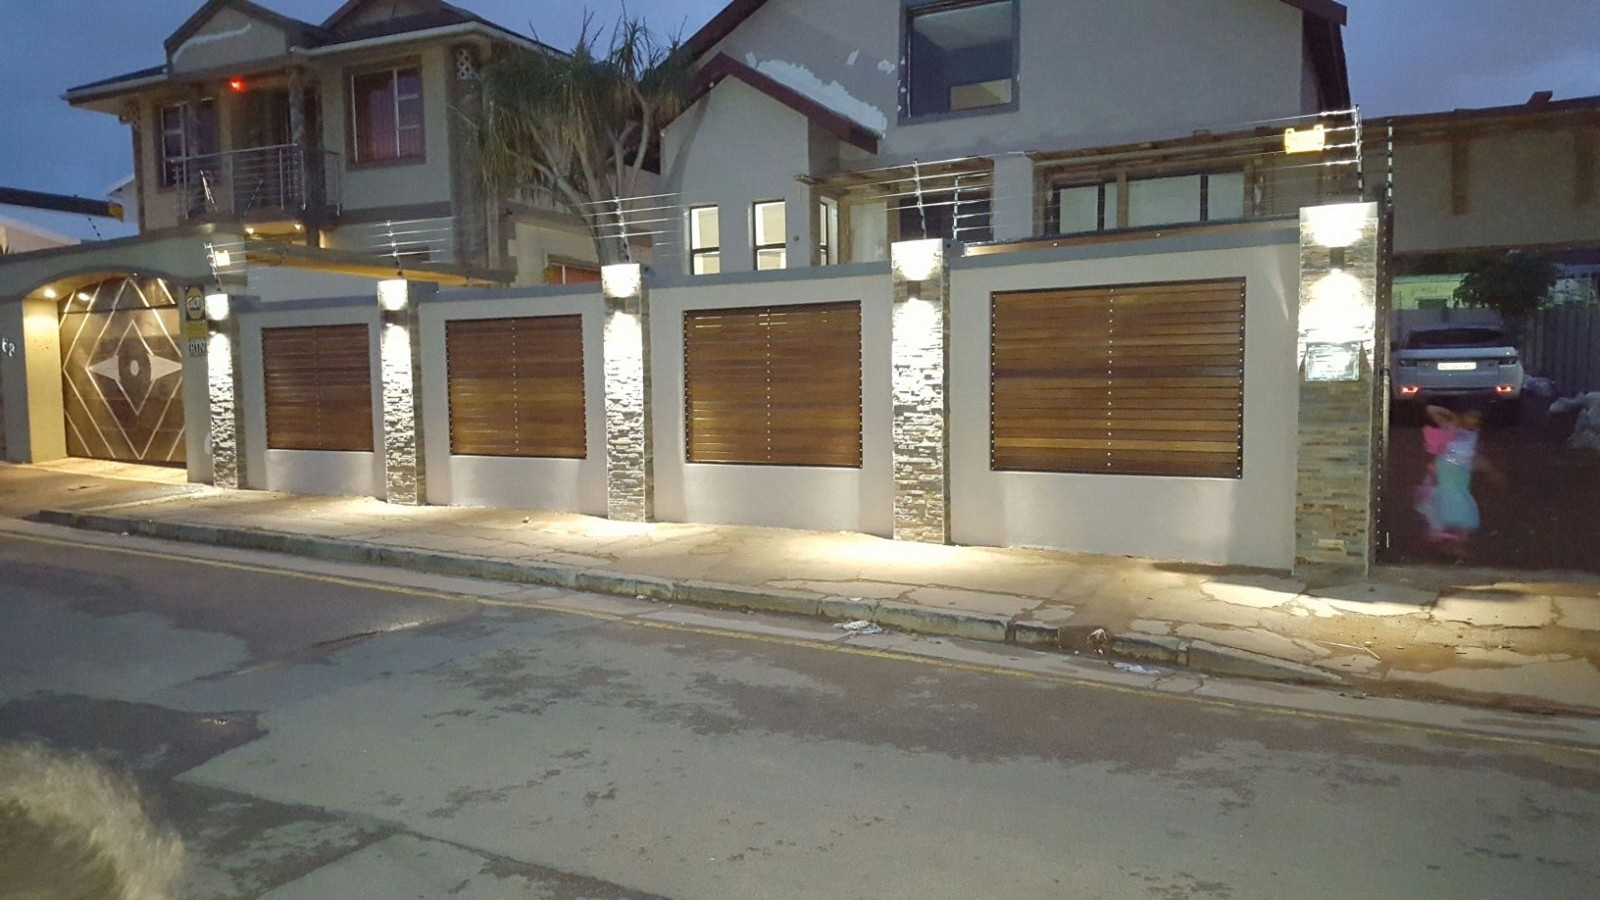 Cutomers Lighting Projects Electra Lighting | Electra Lighting Throughout Johannesburg Outdoor Wall Lights (View 7 of 15)